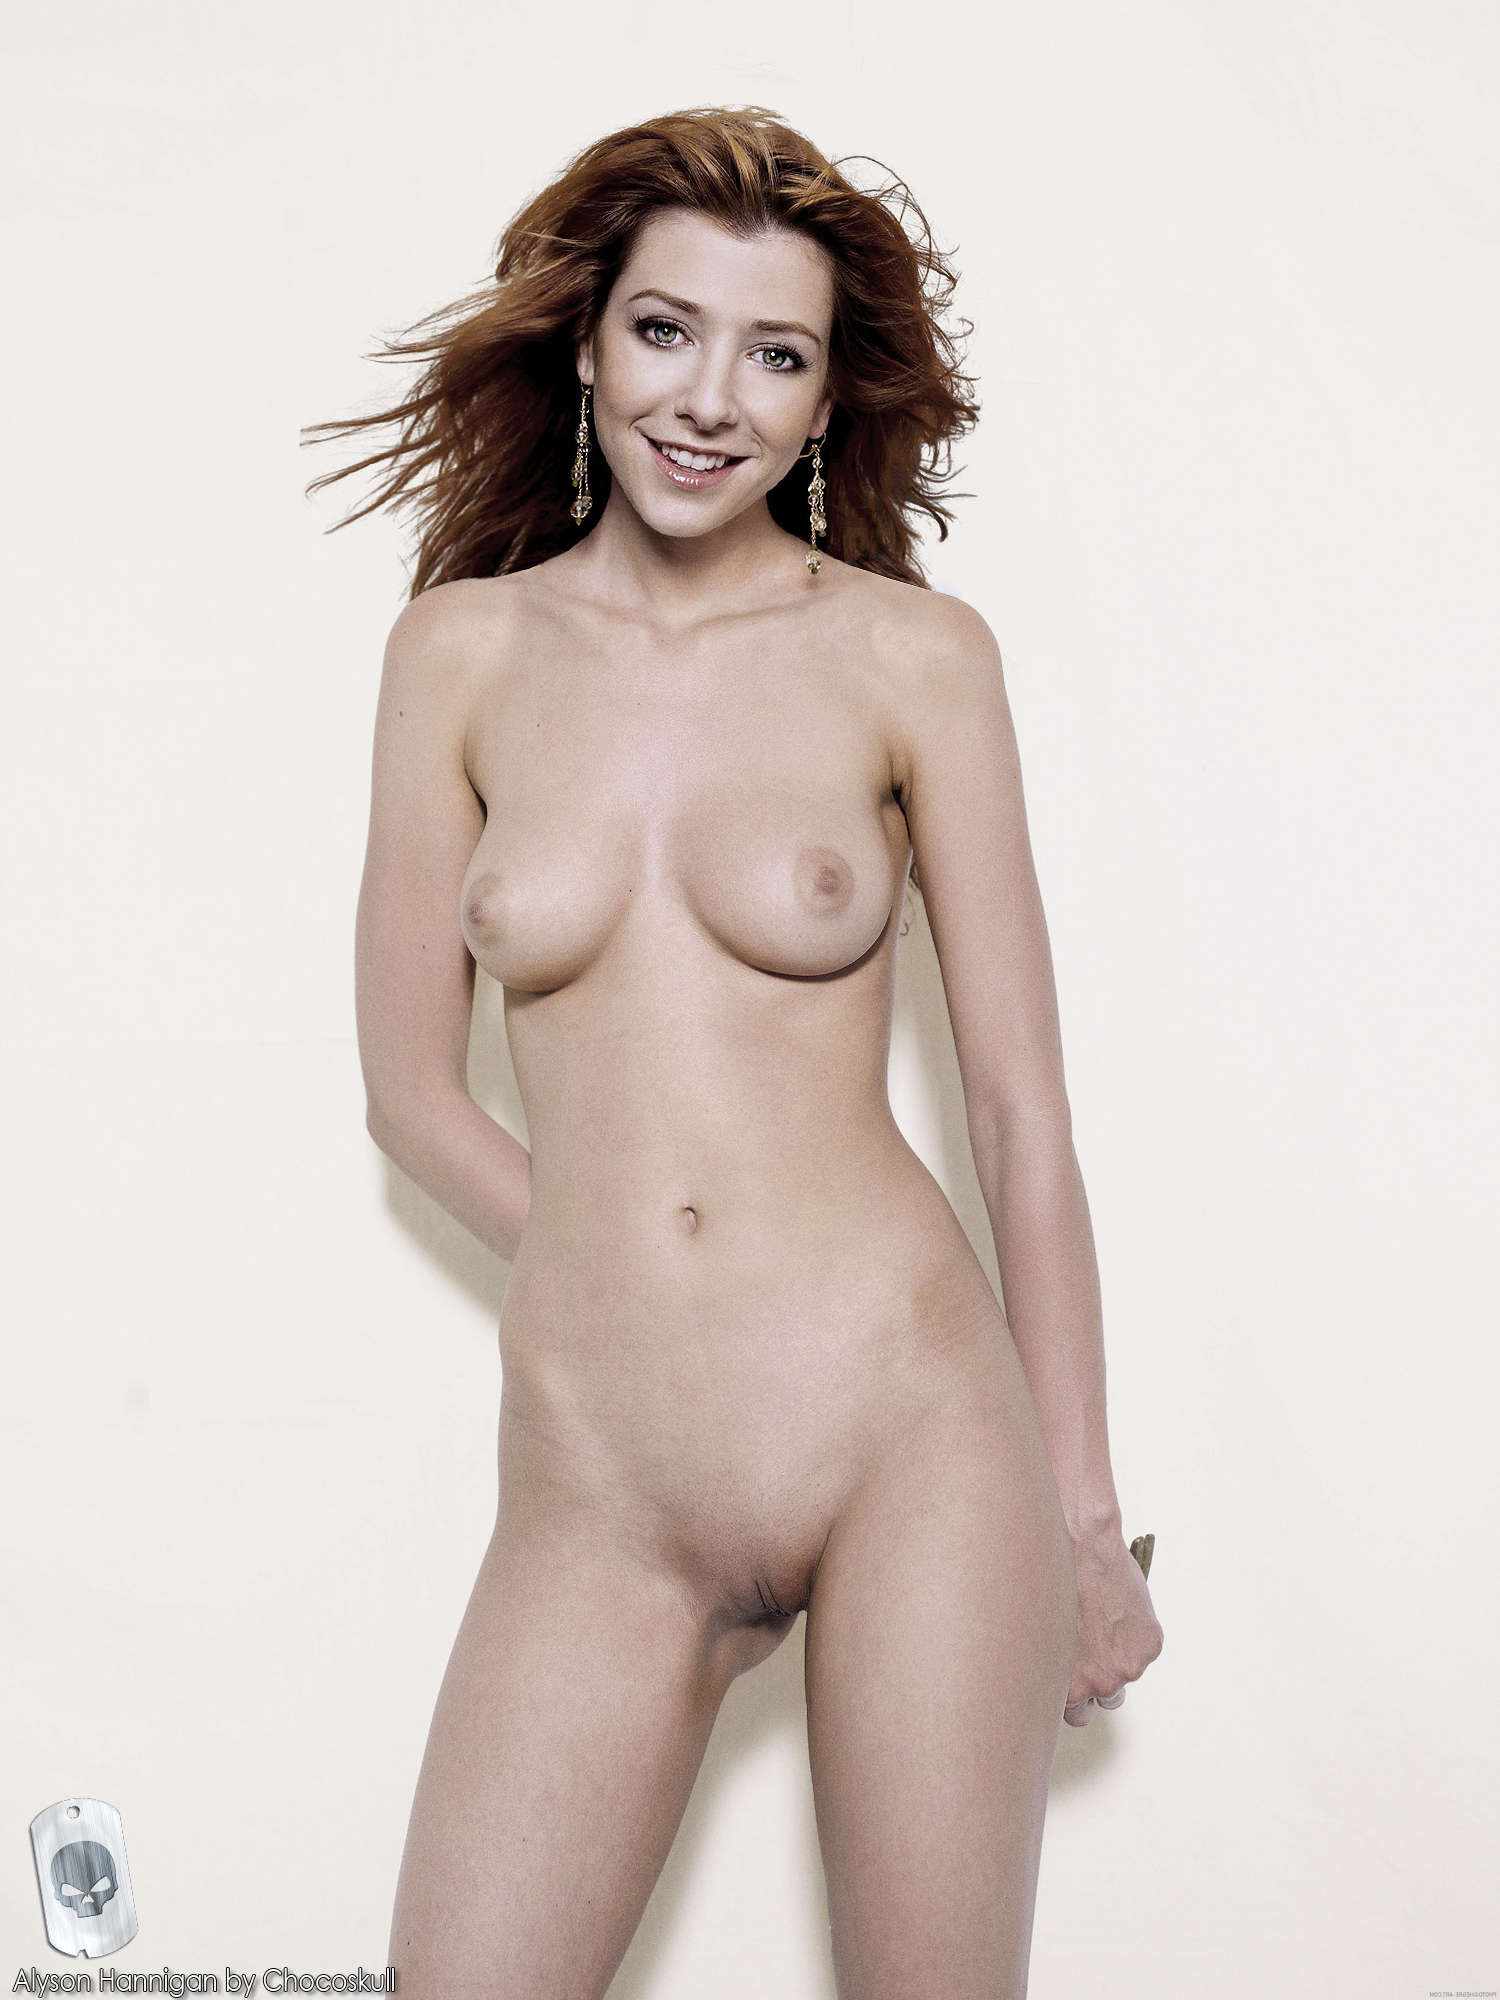 Actress alyson hannigan naked free pictures — photo 12